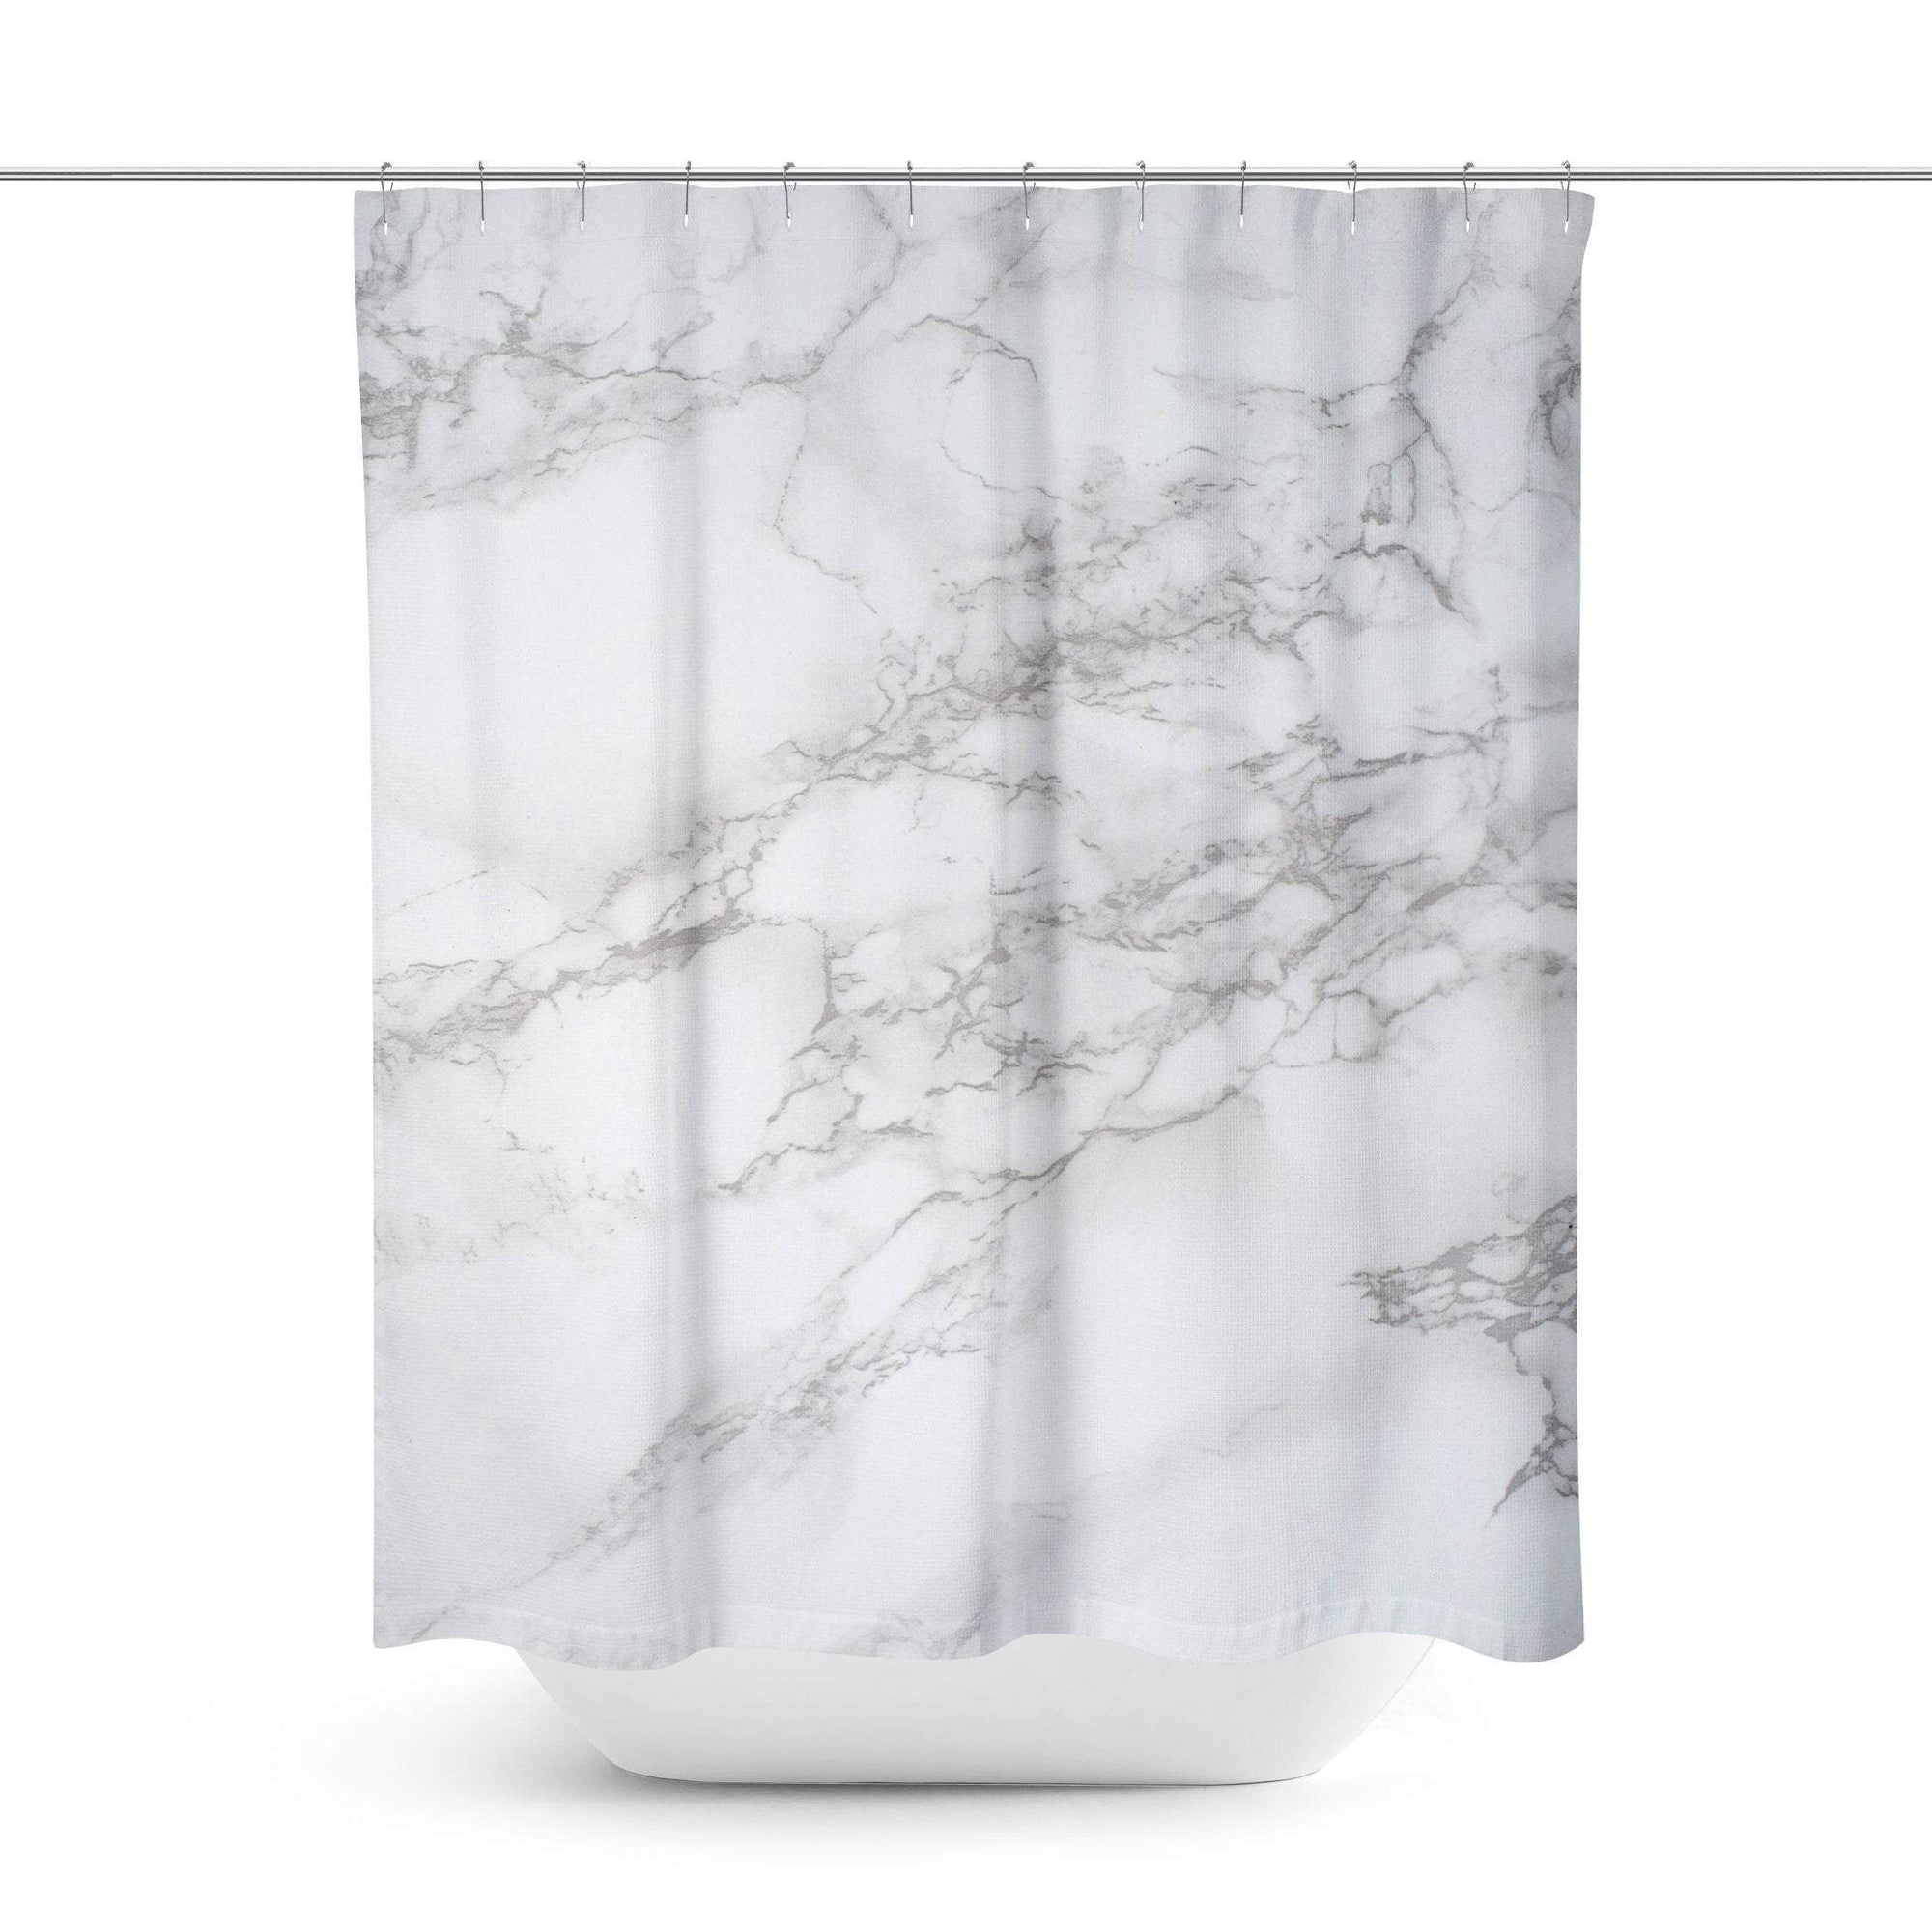 White Marble Shower Curtain - Shower Curtains - W.FRANCIS